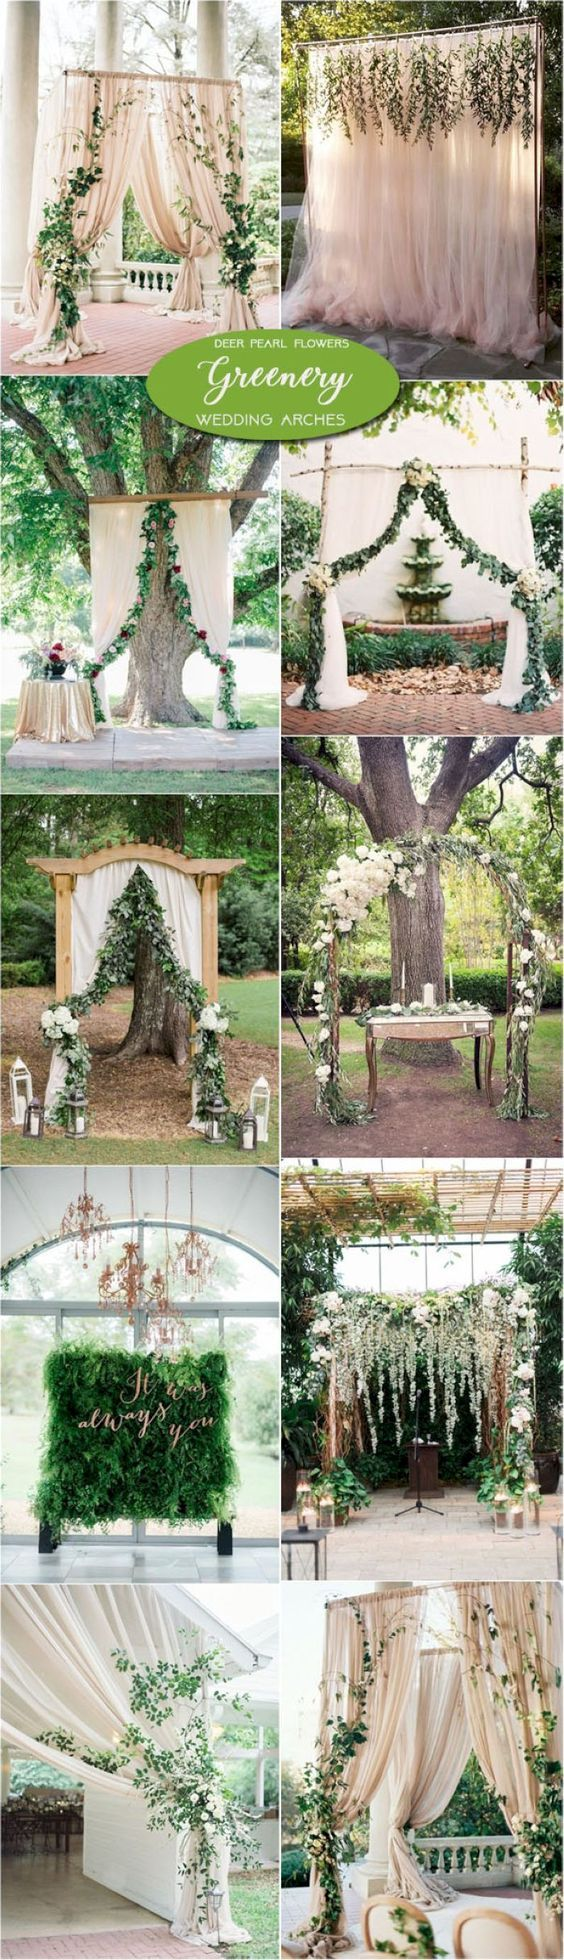 Garden wedding decoration ideas   Elegant Outdoor Wedding Decor Ideas on A Budget  Dream Wedding